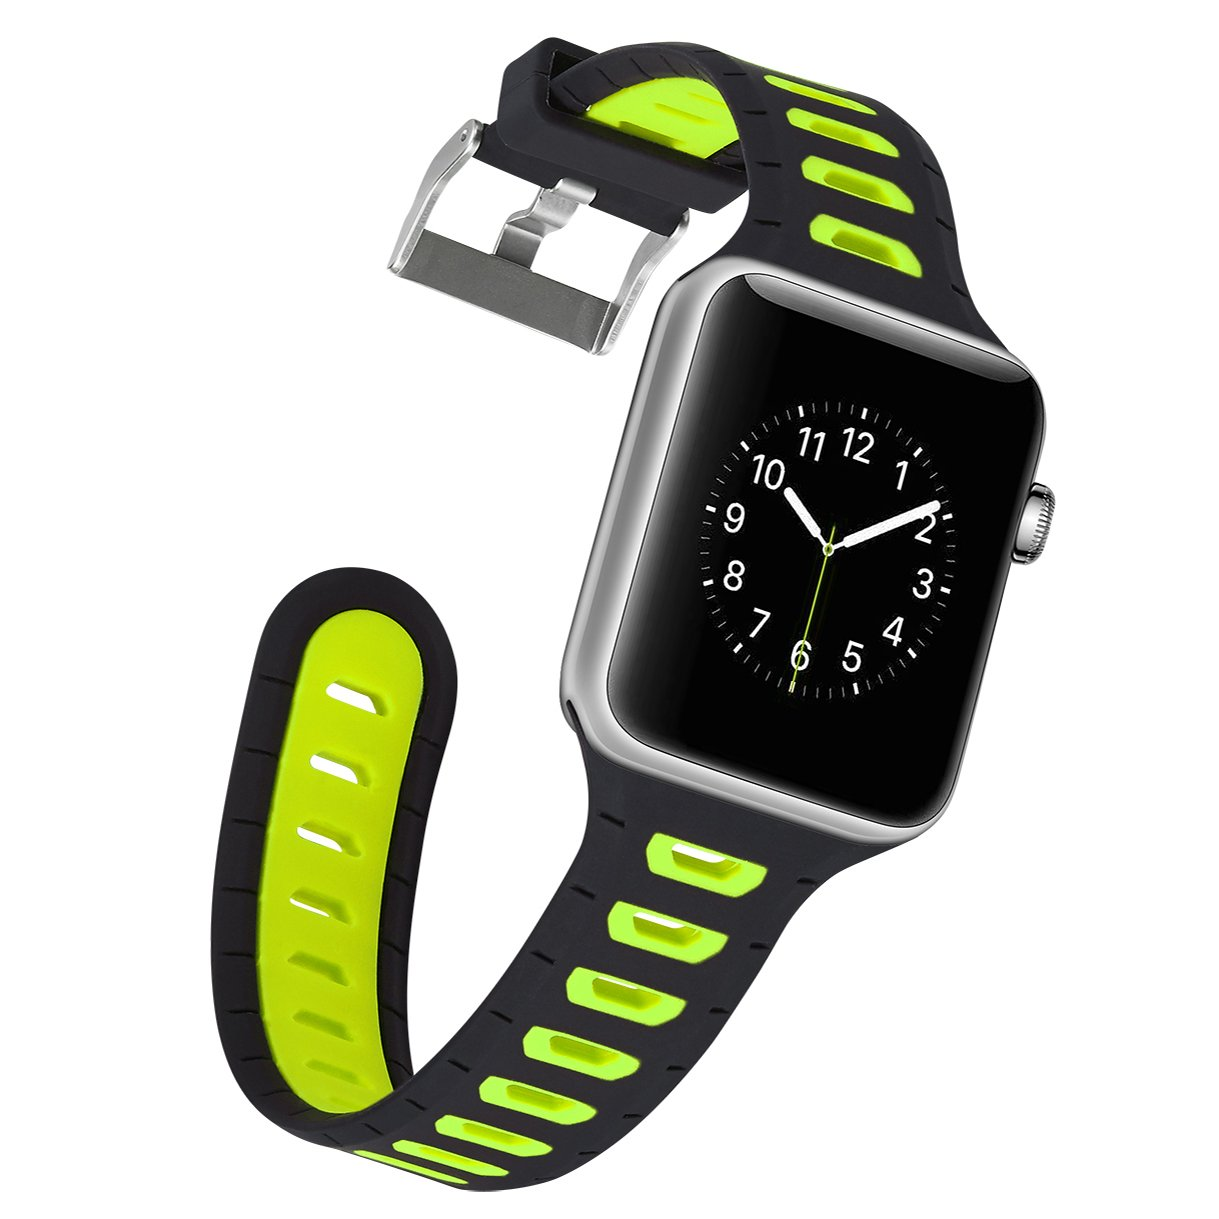 Correa Apple Watch, X-cool de Silicona Sumergible Sport de Reemplazo Banda para iwatch Series 3 2 1 (Verde, 42mm): Amazon.es: Deportes y aire libre